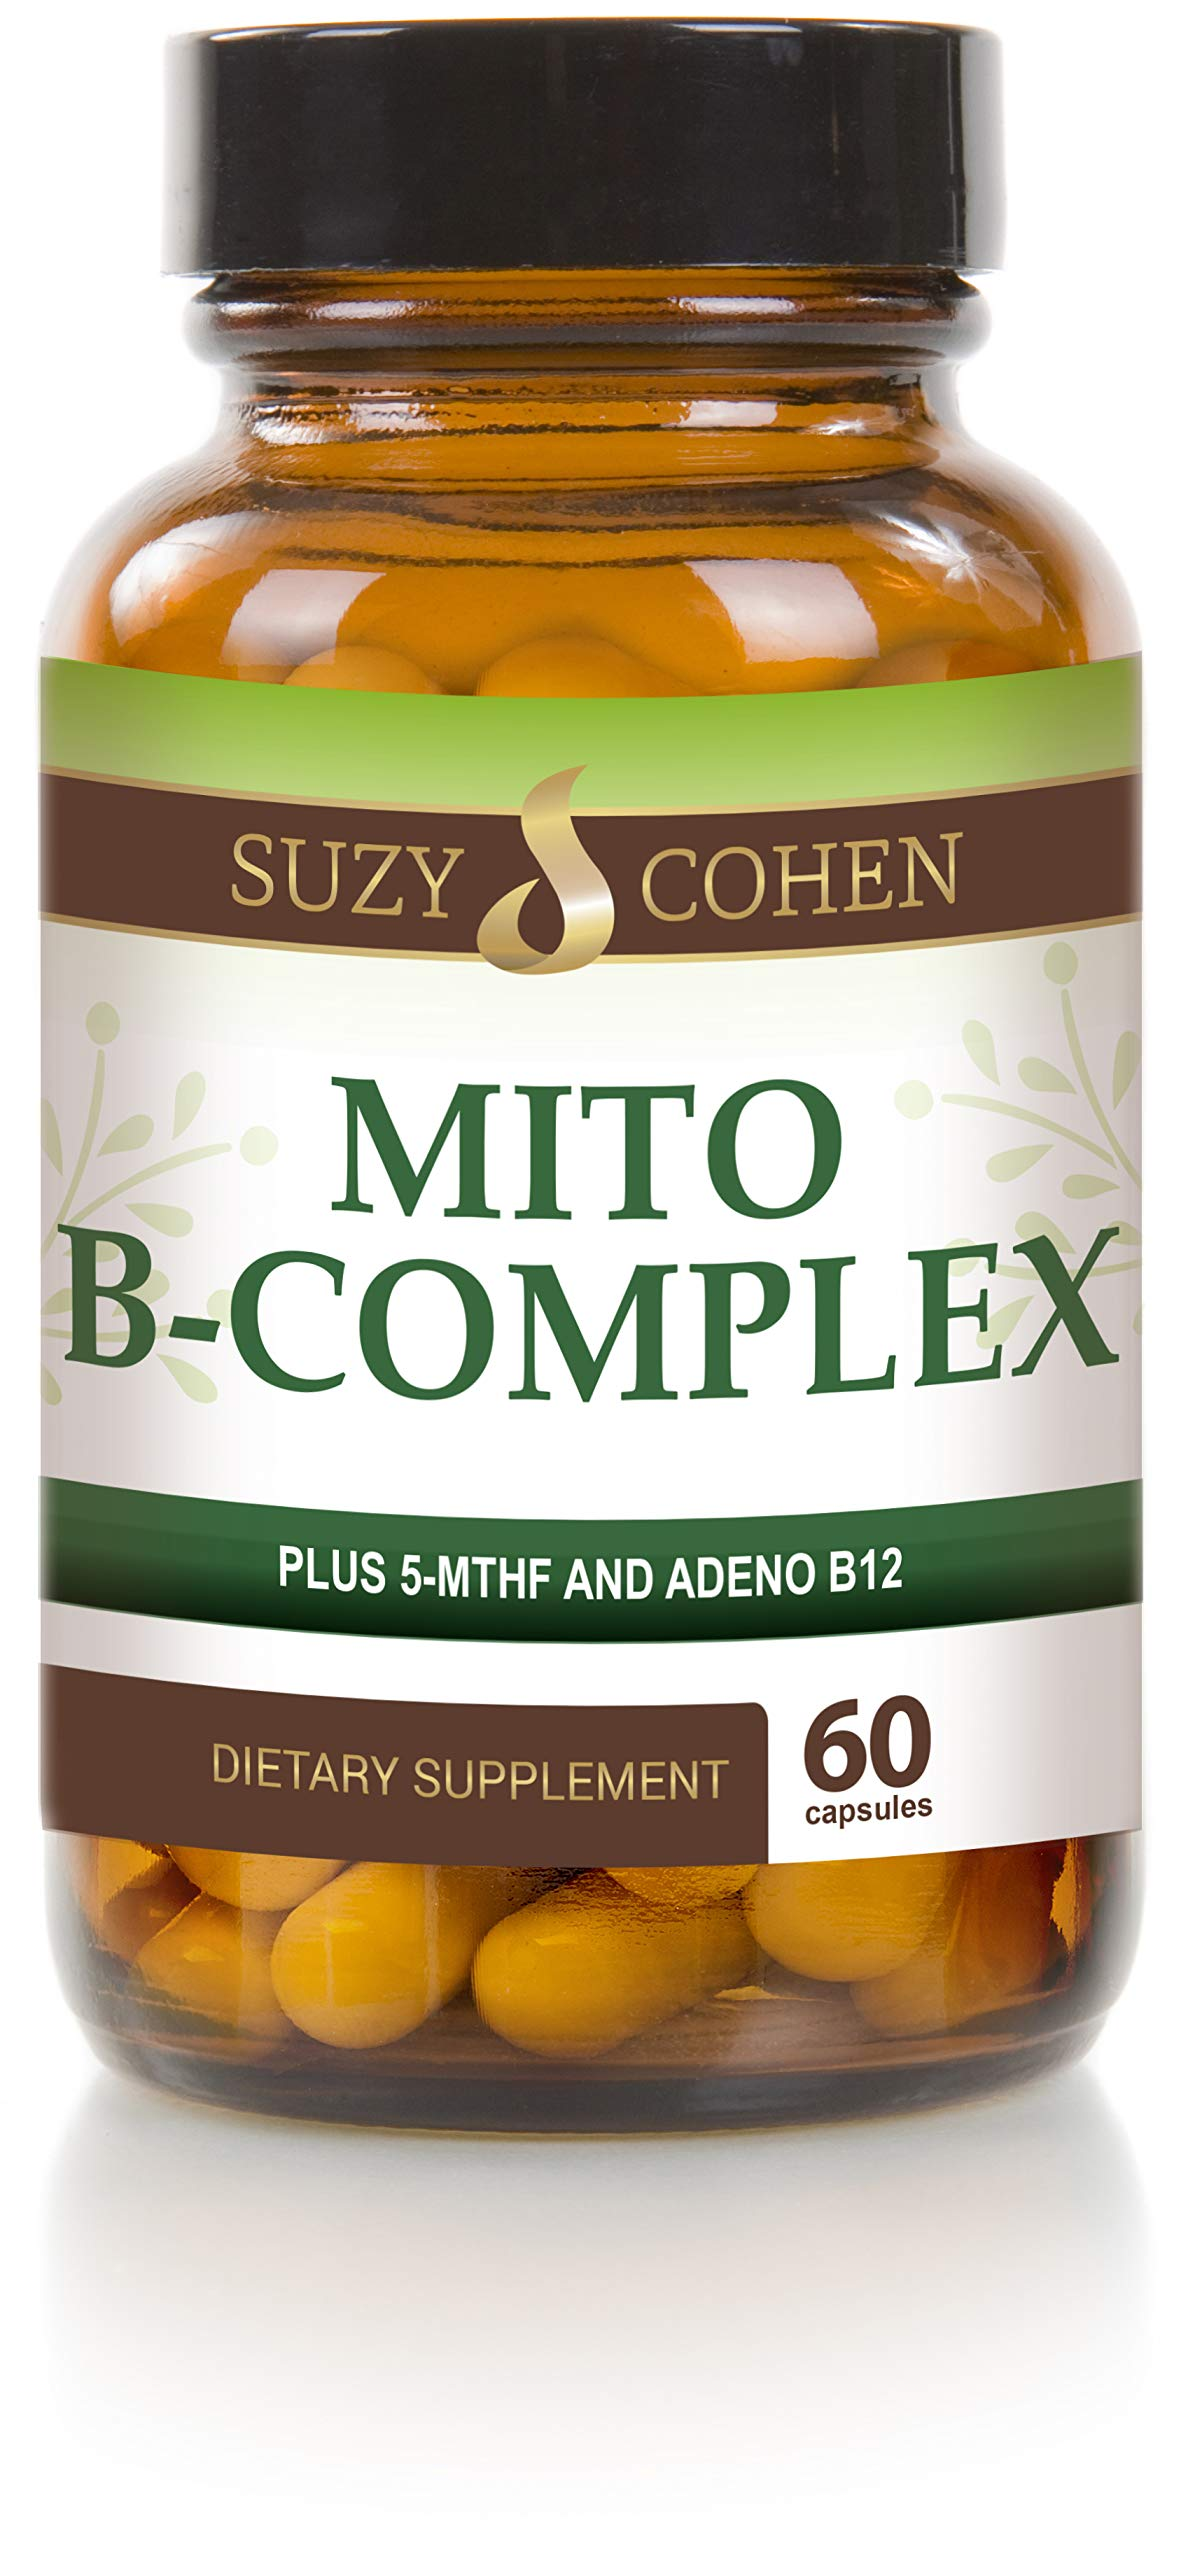 Mito B Complex - Vegan Mito B Complex with 5-MTHF and Adeno B12-60 Servings - by Suzy Cohen, RPh